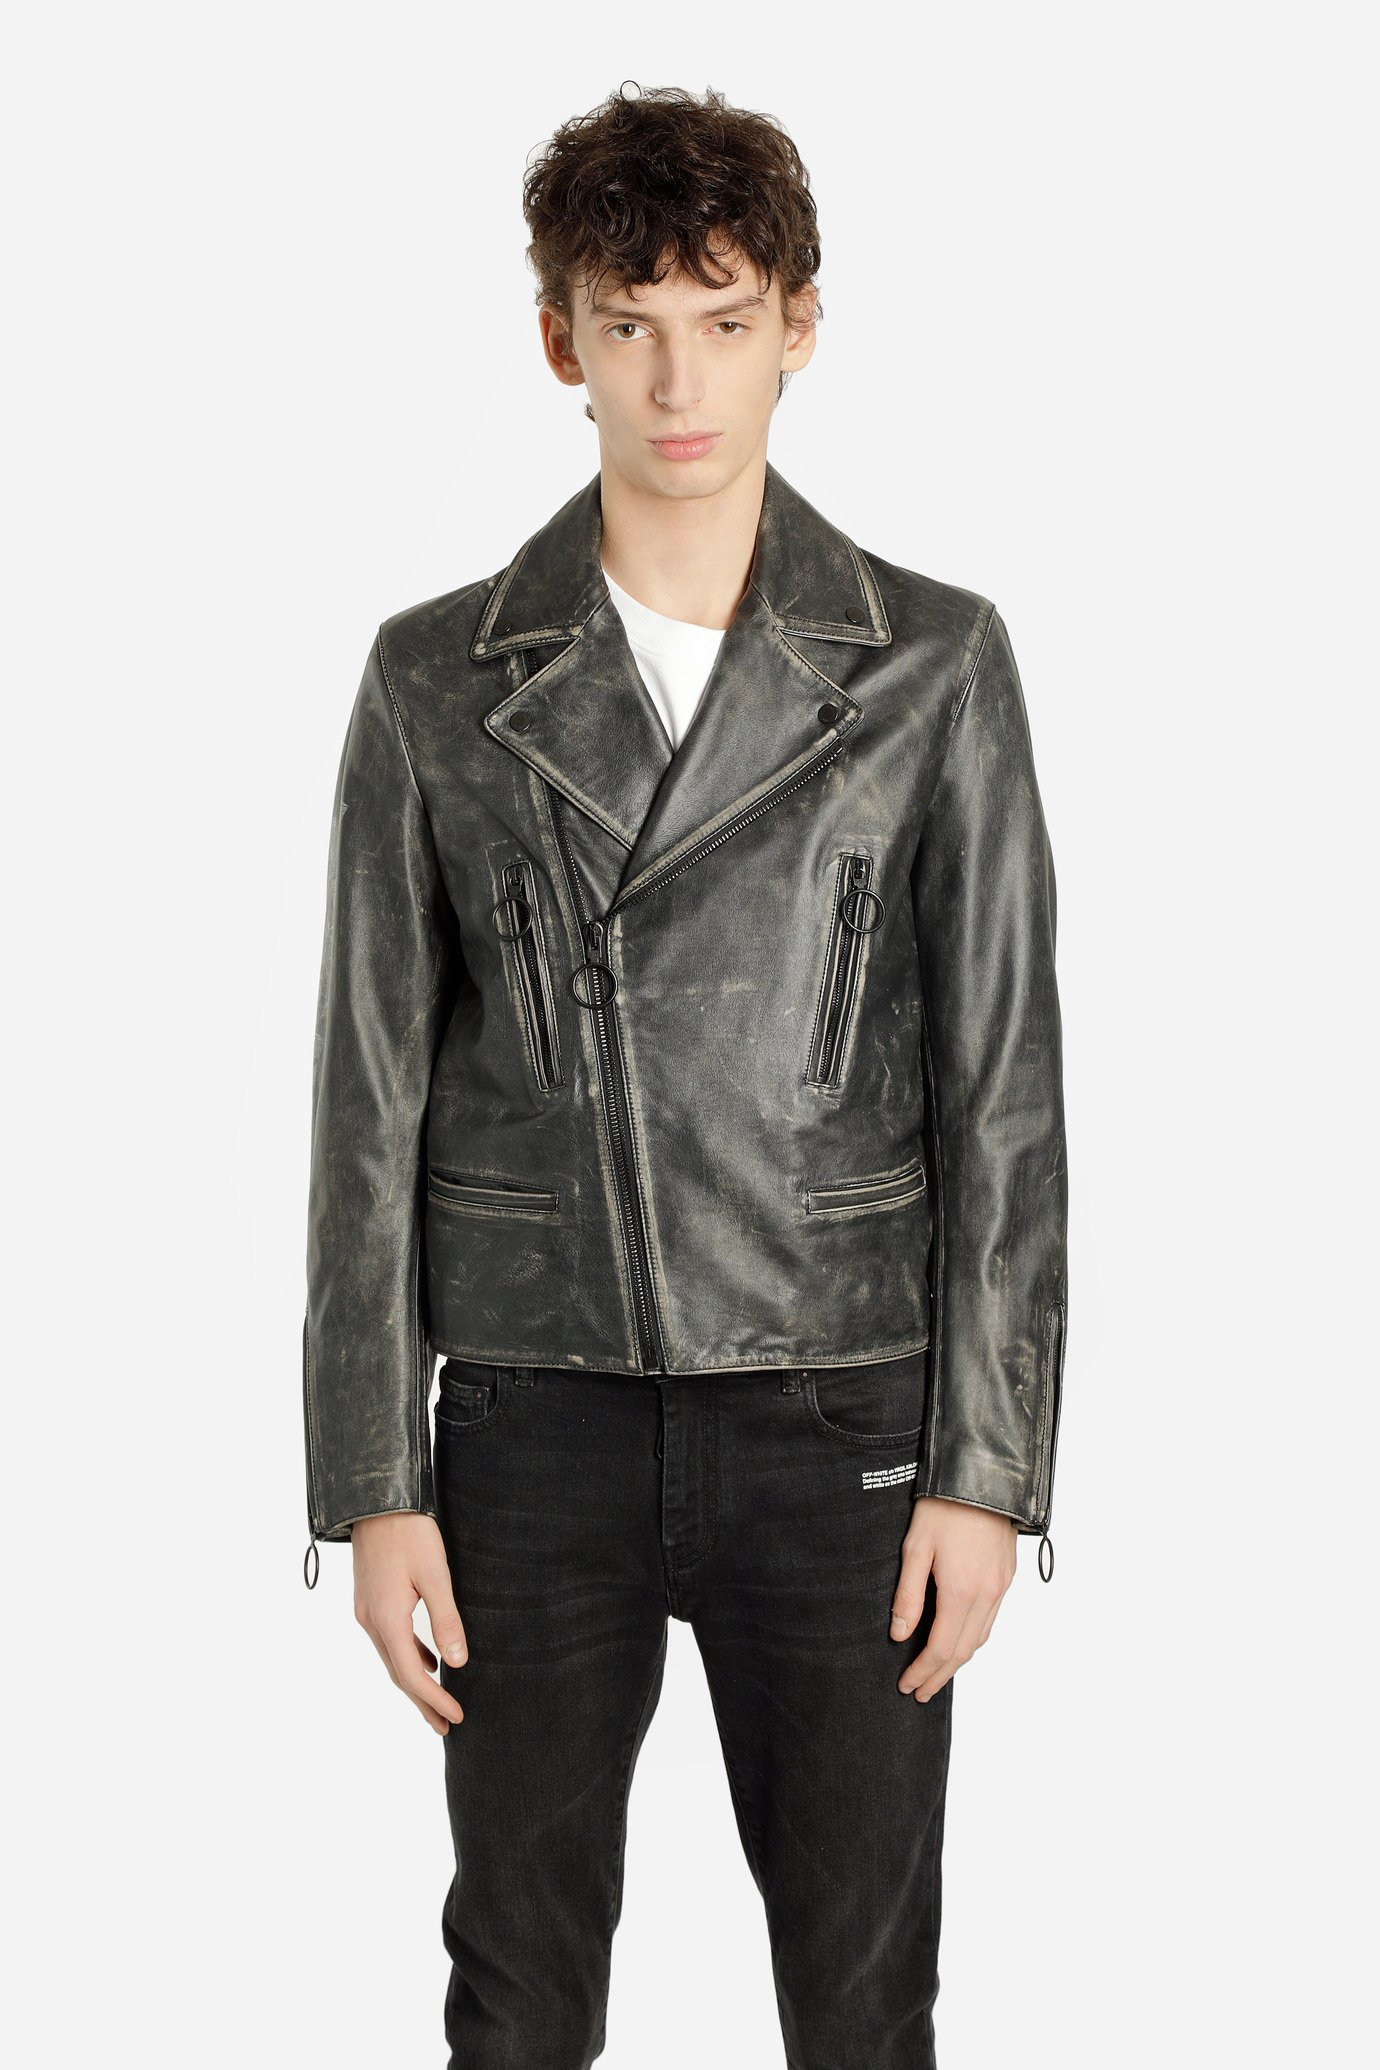 Off White C/O Virgil Abloh Leather Jackets